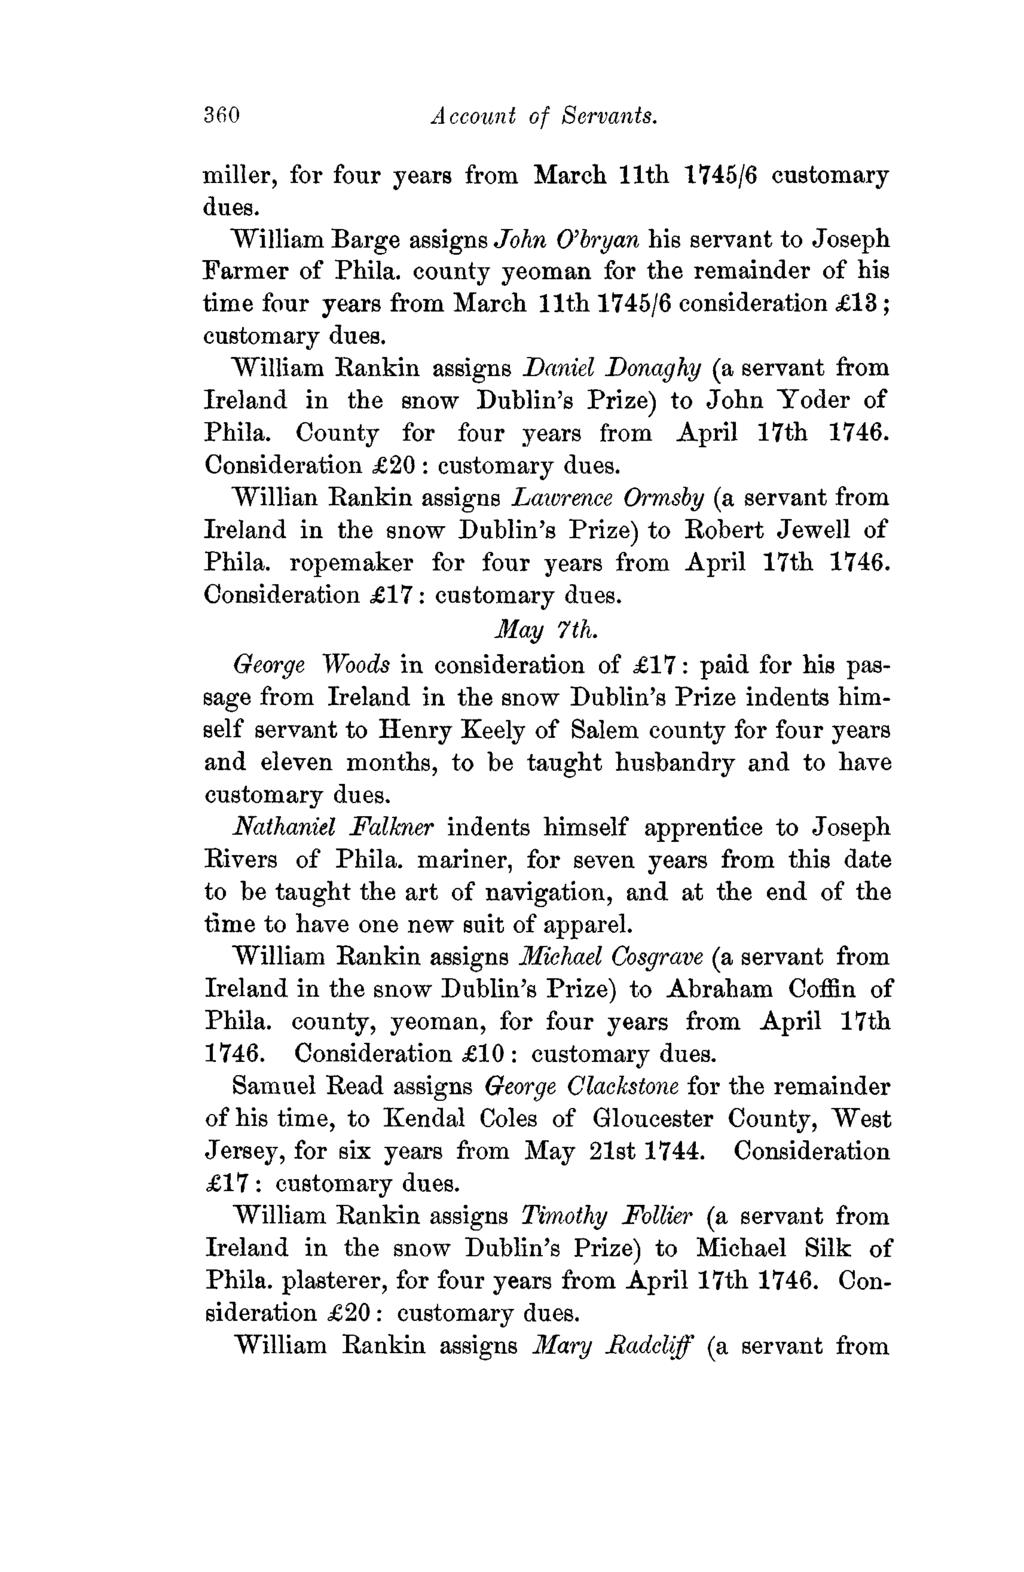 360 Account of Servants. miller, for four years from March 11th 1745/6 customary dues. William Barge assigns John O'bryan his servant to Joseph Farmer of Phila.